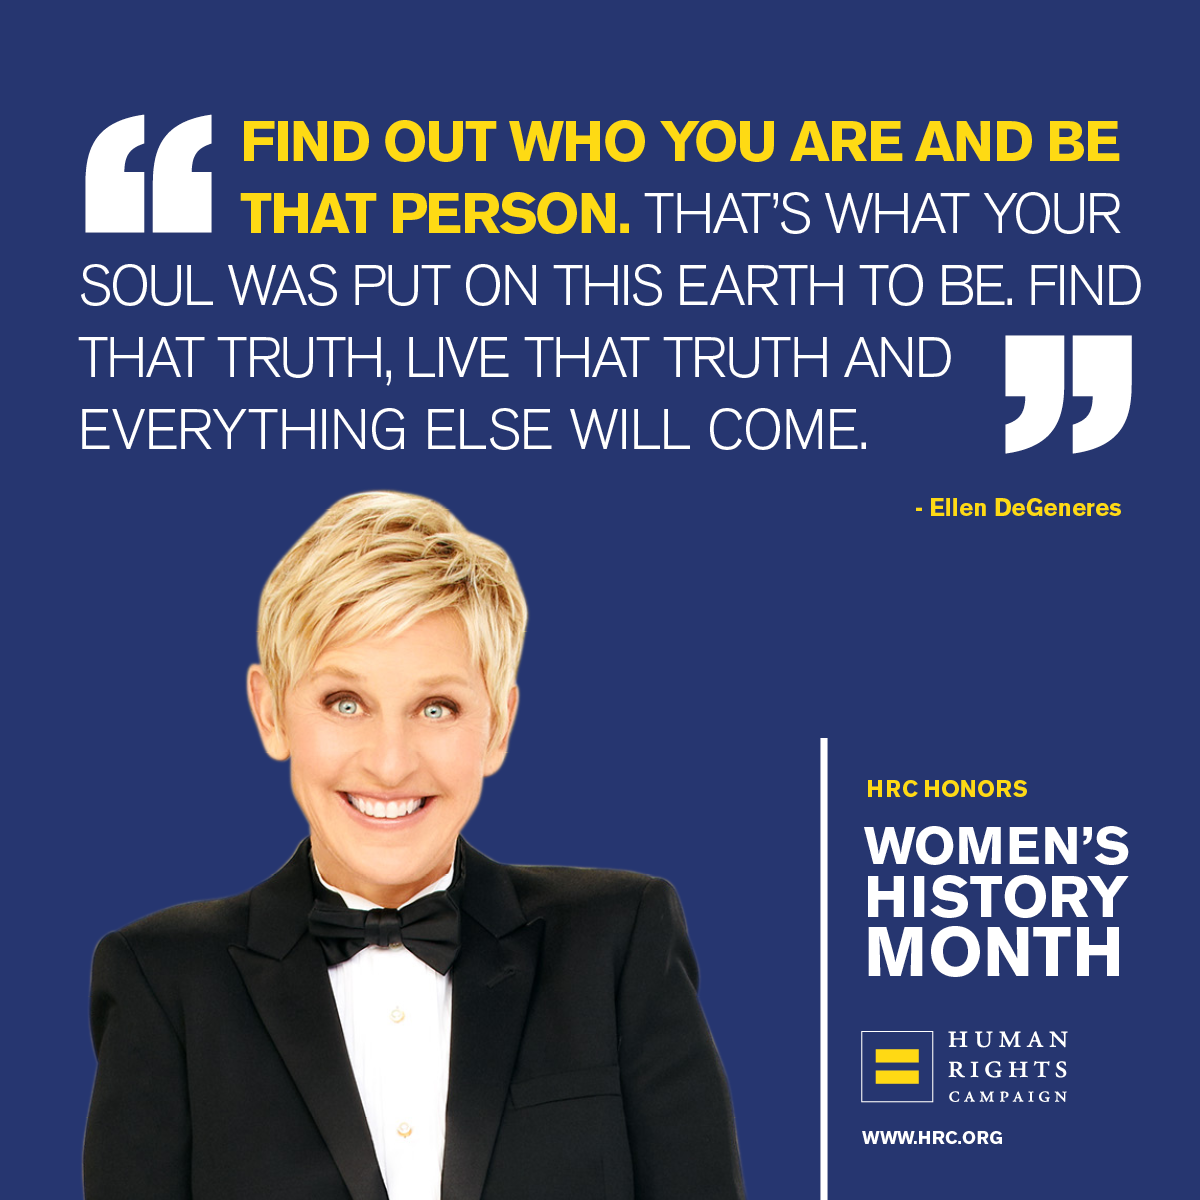 Ellen Degeneres An Lgbtq Icon And Role Model Has Led Our Struggle With Resilience And La Quotes By Famous People Ellen Degeneres Quotes Quotes About New Year